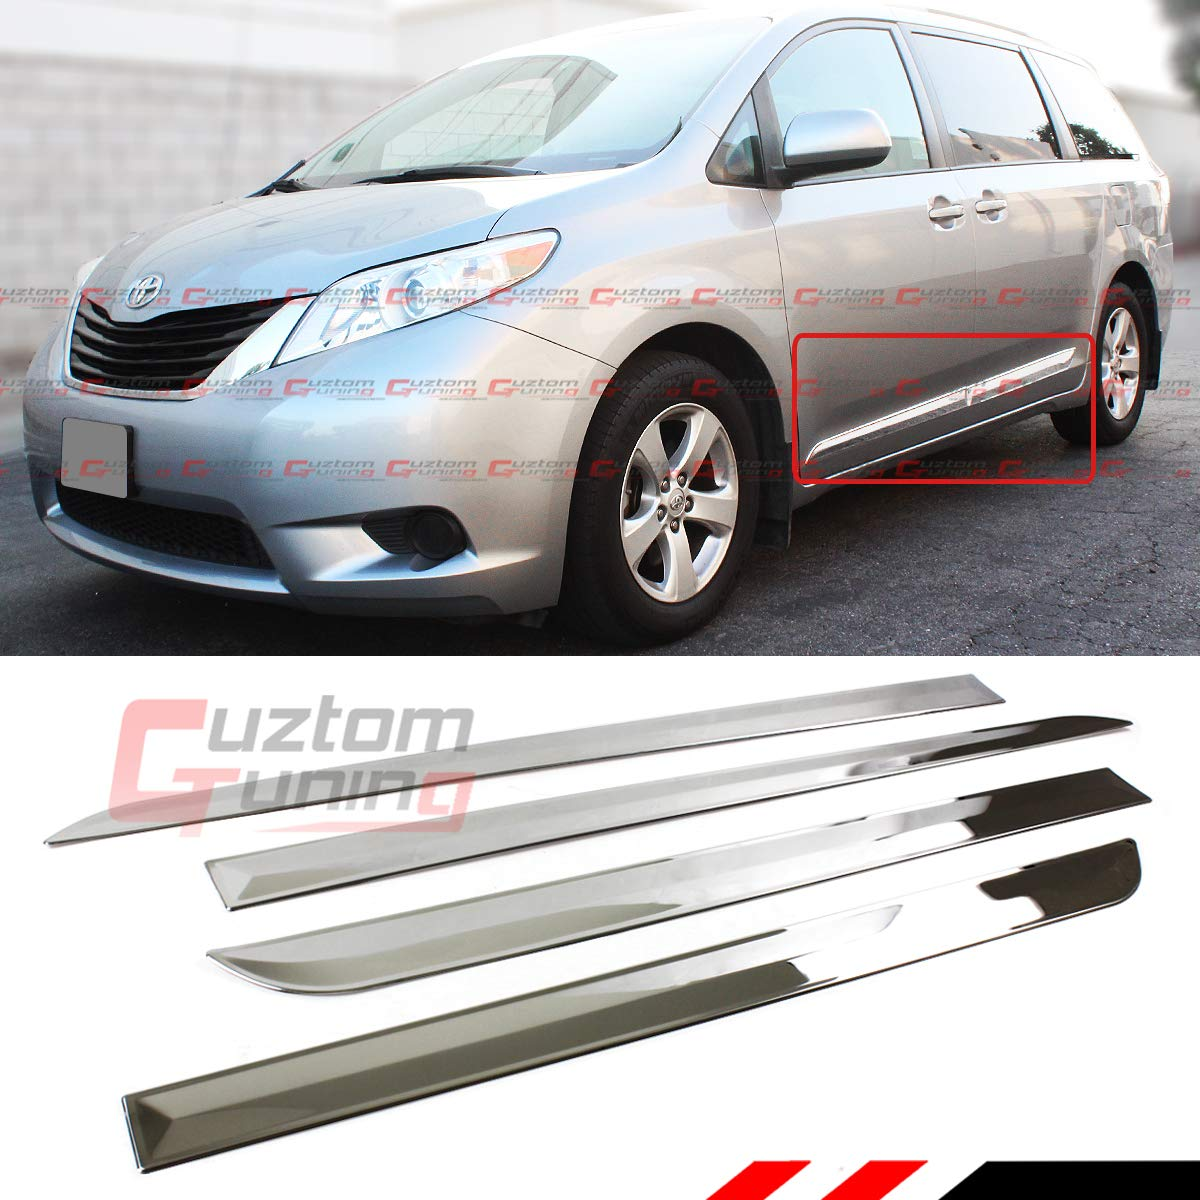 Cuztom Tuning Fits for:2011-2017 Toyota Sienna LE XLE Polished Chrome Finish Stainless Steel Side Body MOLDING Moulding Trim KIT Cuztom_Tuning